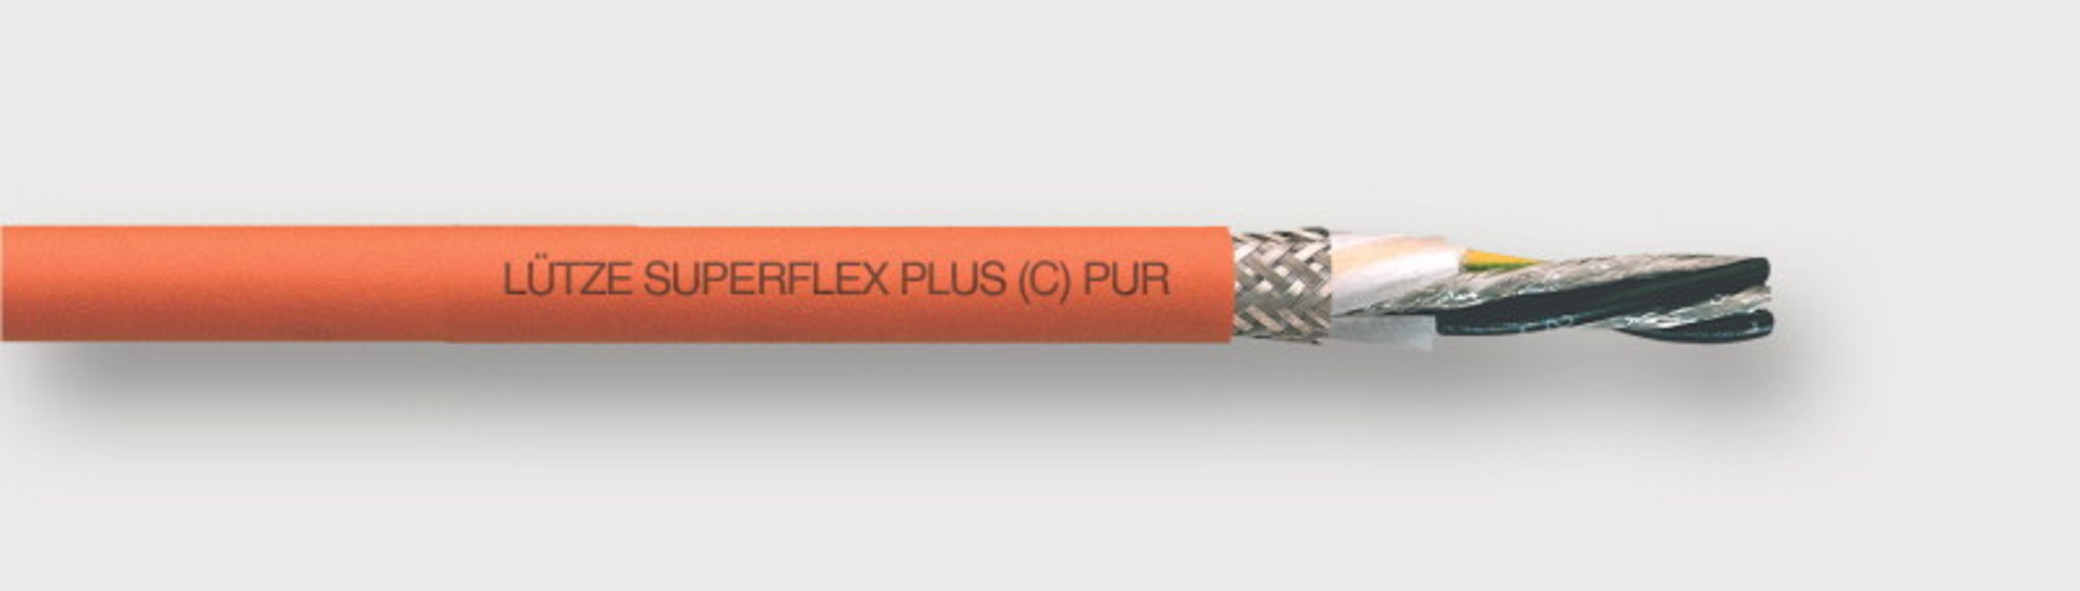 111427 - LÜTZE SUPERFLEX® PLUS M (C) PUR SERVO 0.6/1 kV High Flexing Motor Cable for Siemens and other systems For highest requirements